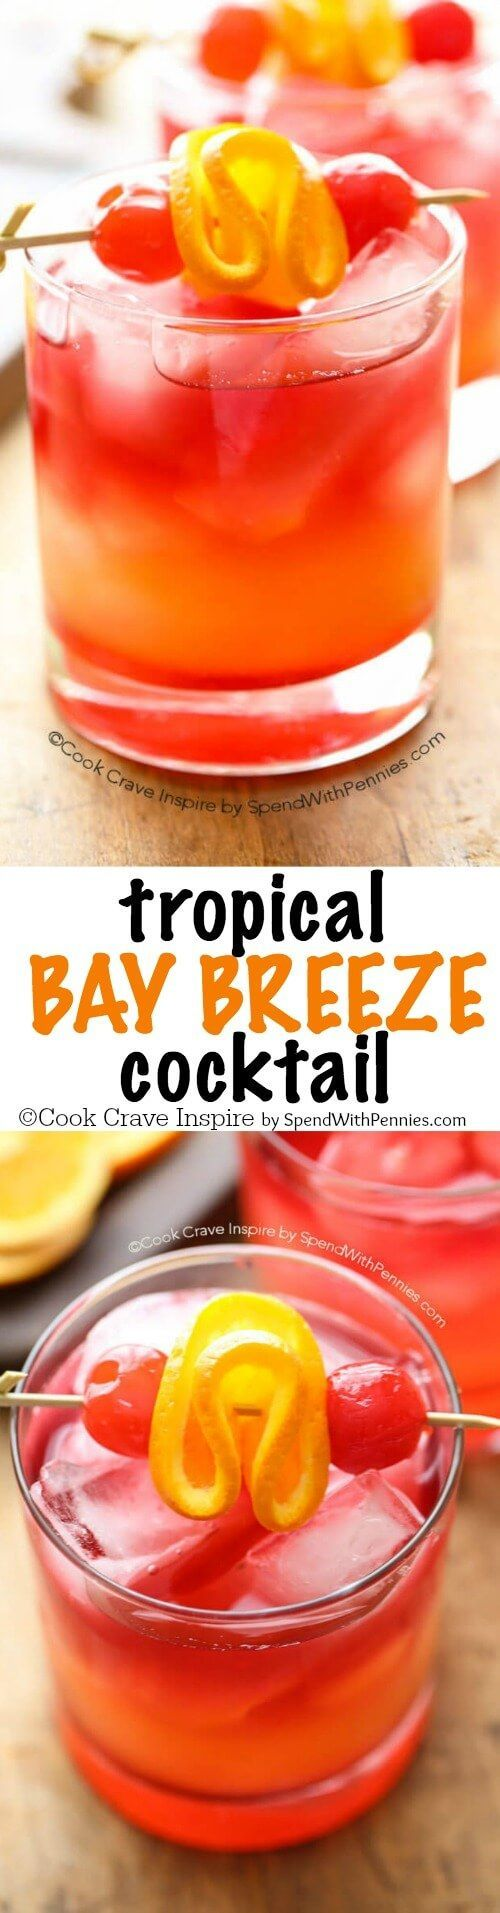 Tropical Bay Breeze Cocktail | Recipe | Coconut rum, Easy tricks ...